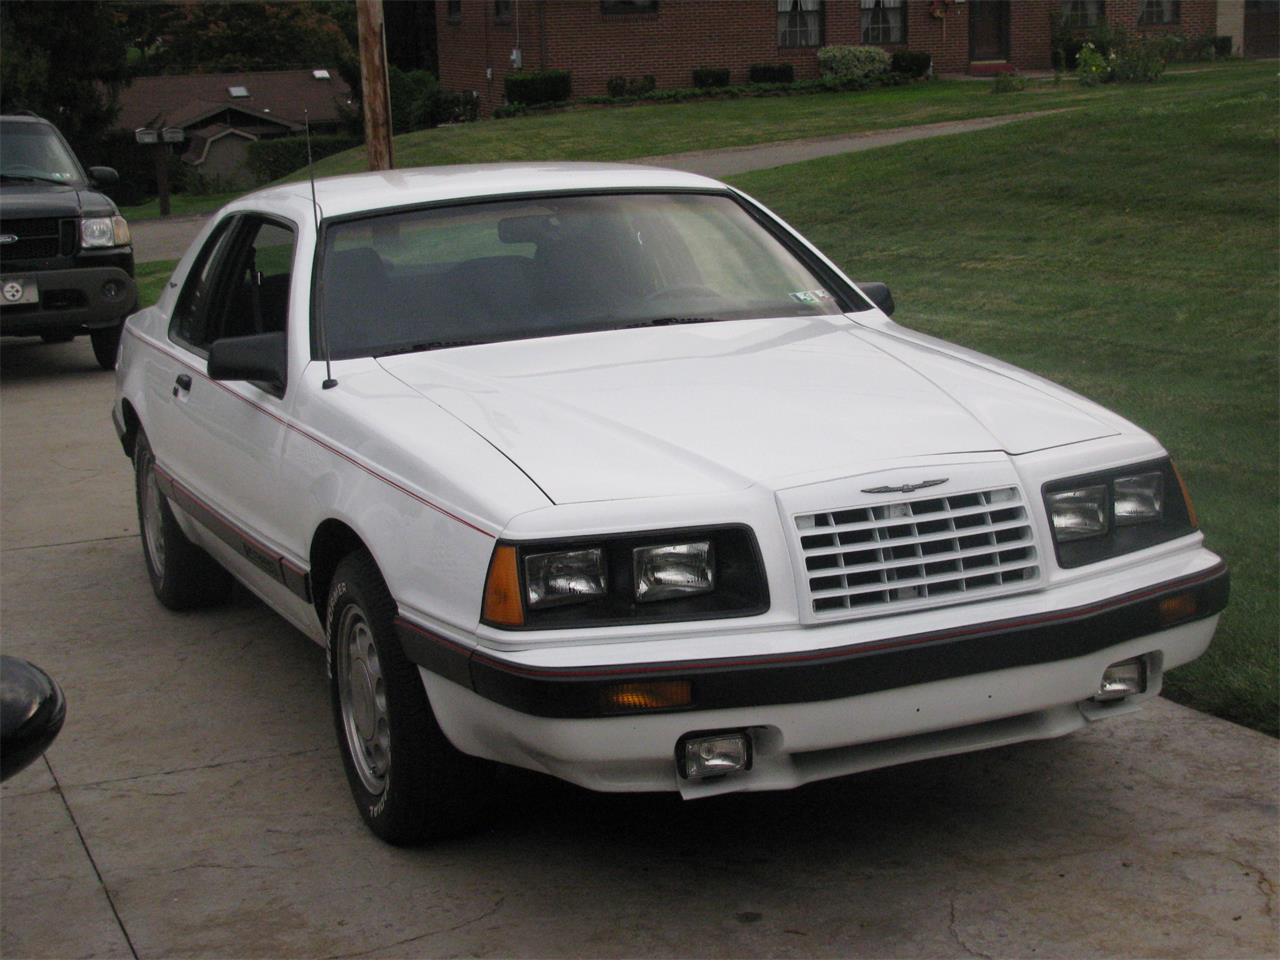 Large Picture of 1986 Ford Thunderbird  located in Pennsylvania Offered by a Private Seller - KHON